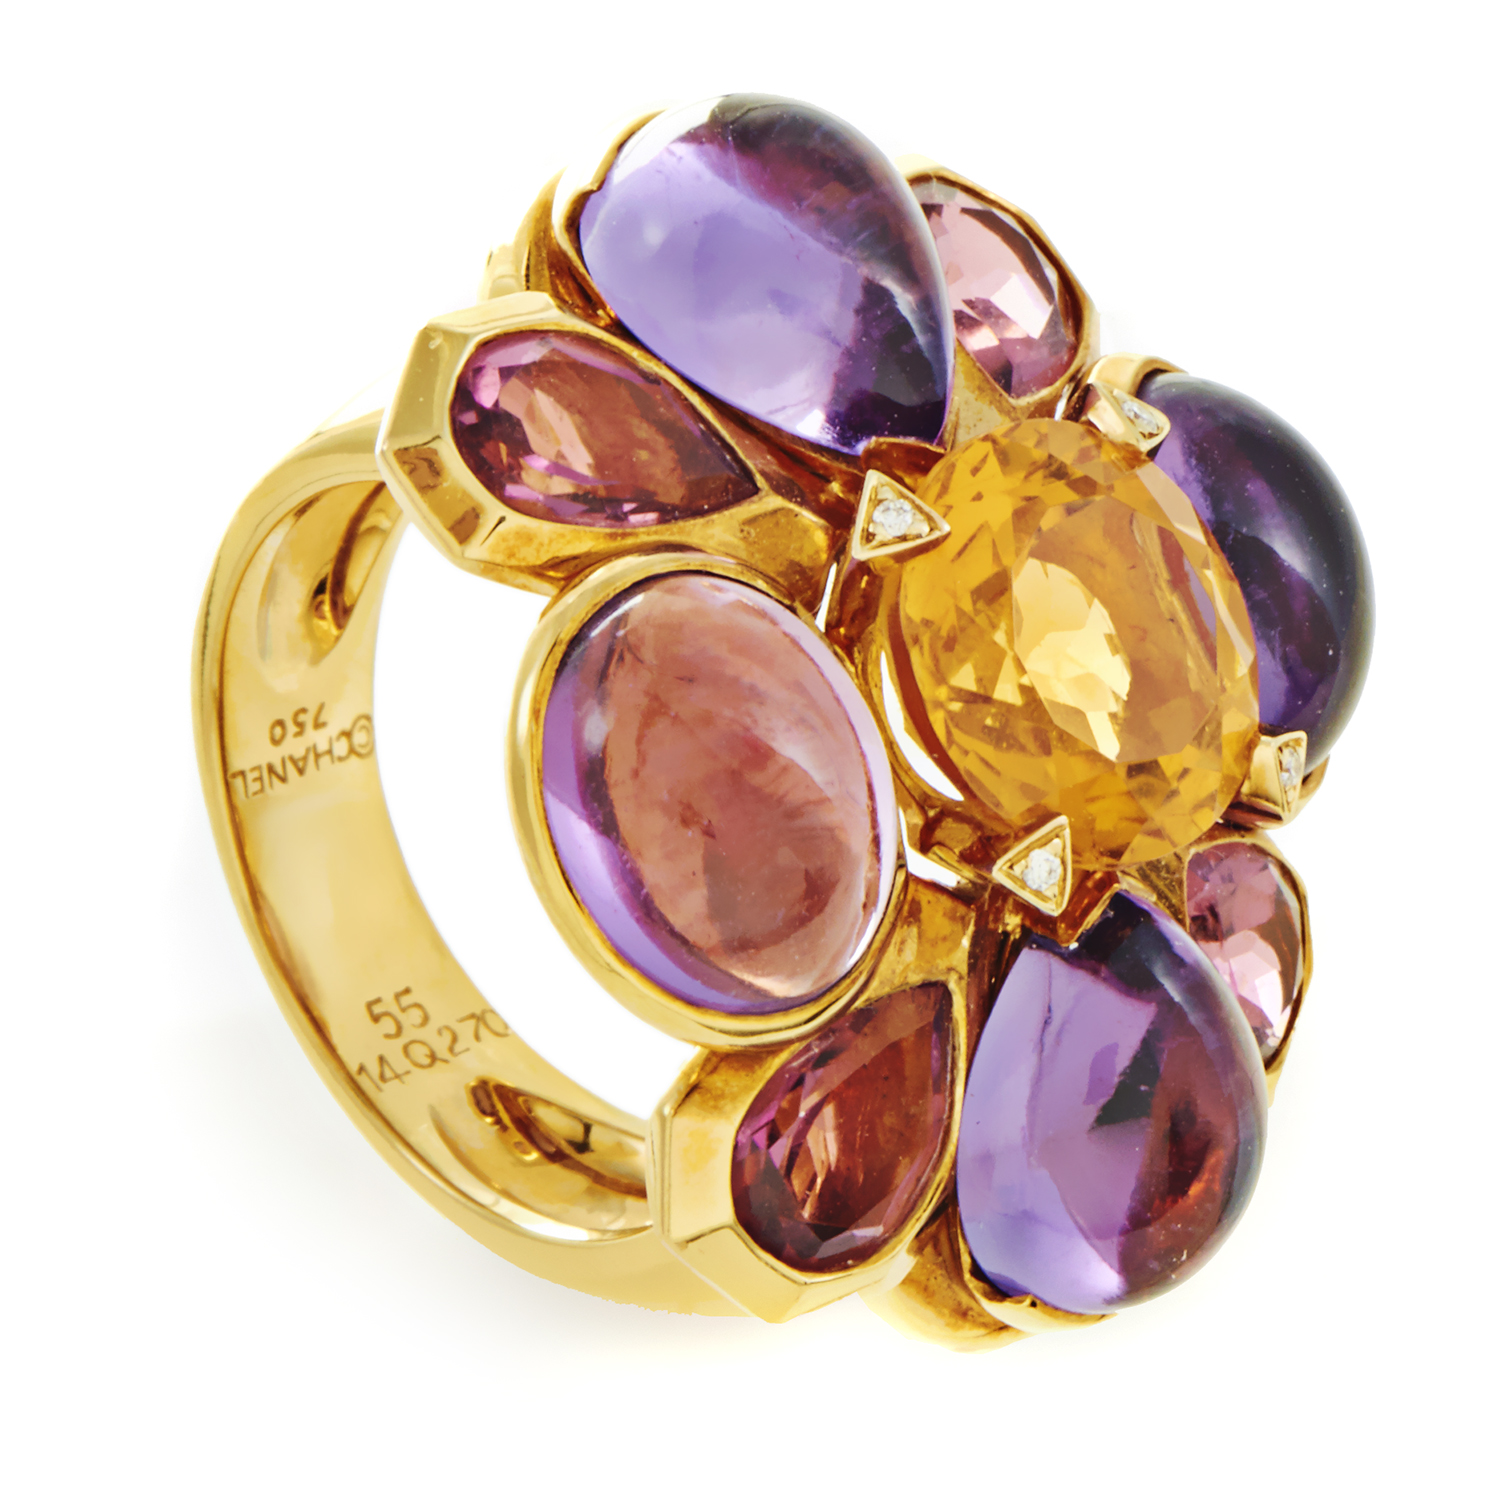 Chanel San Marco Women's 18K Yellow Gold Multi-Gemstone Cocktail Ring